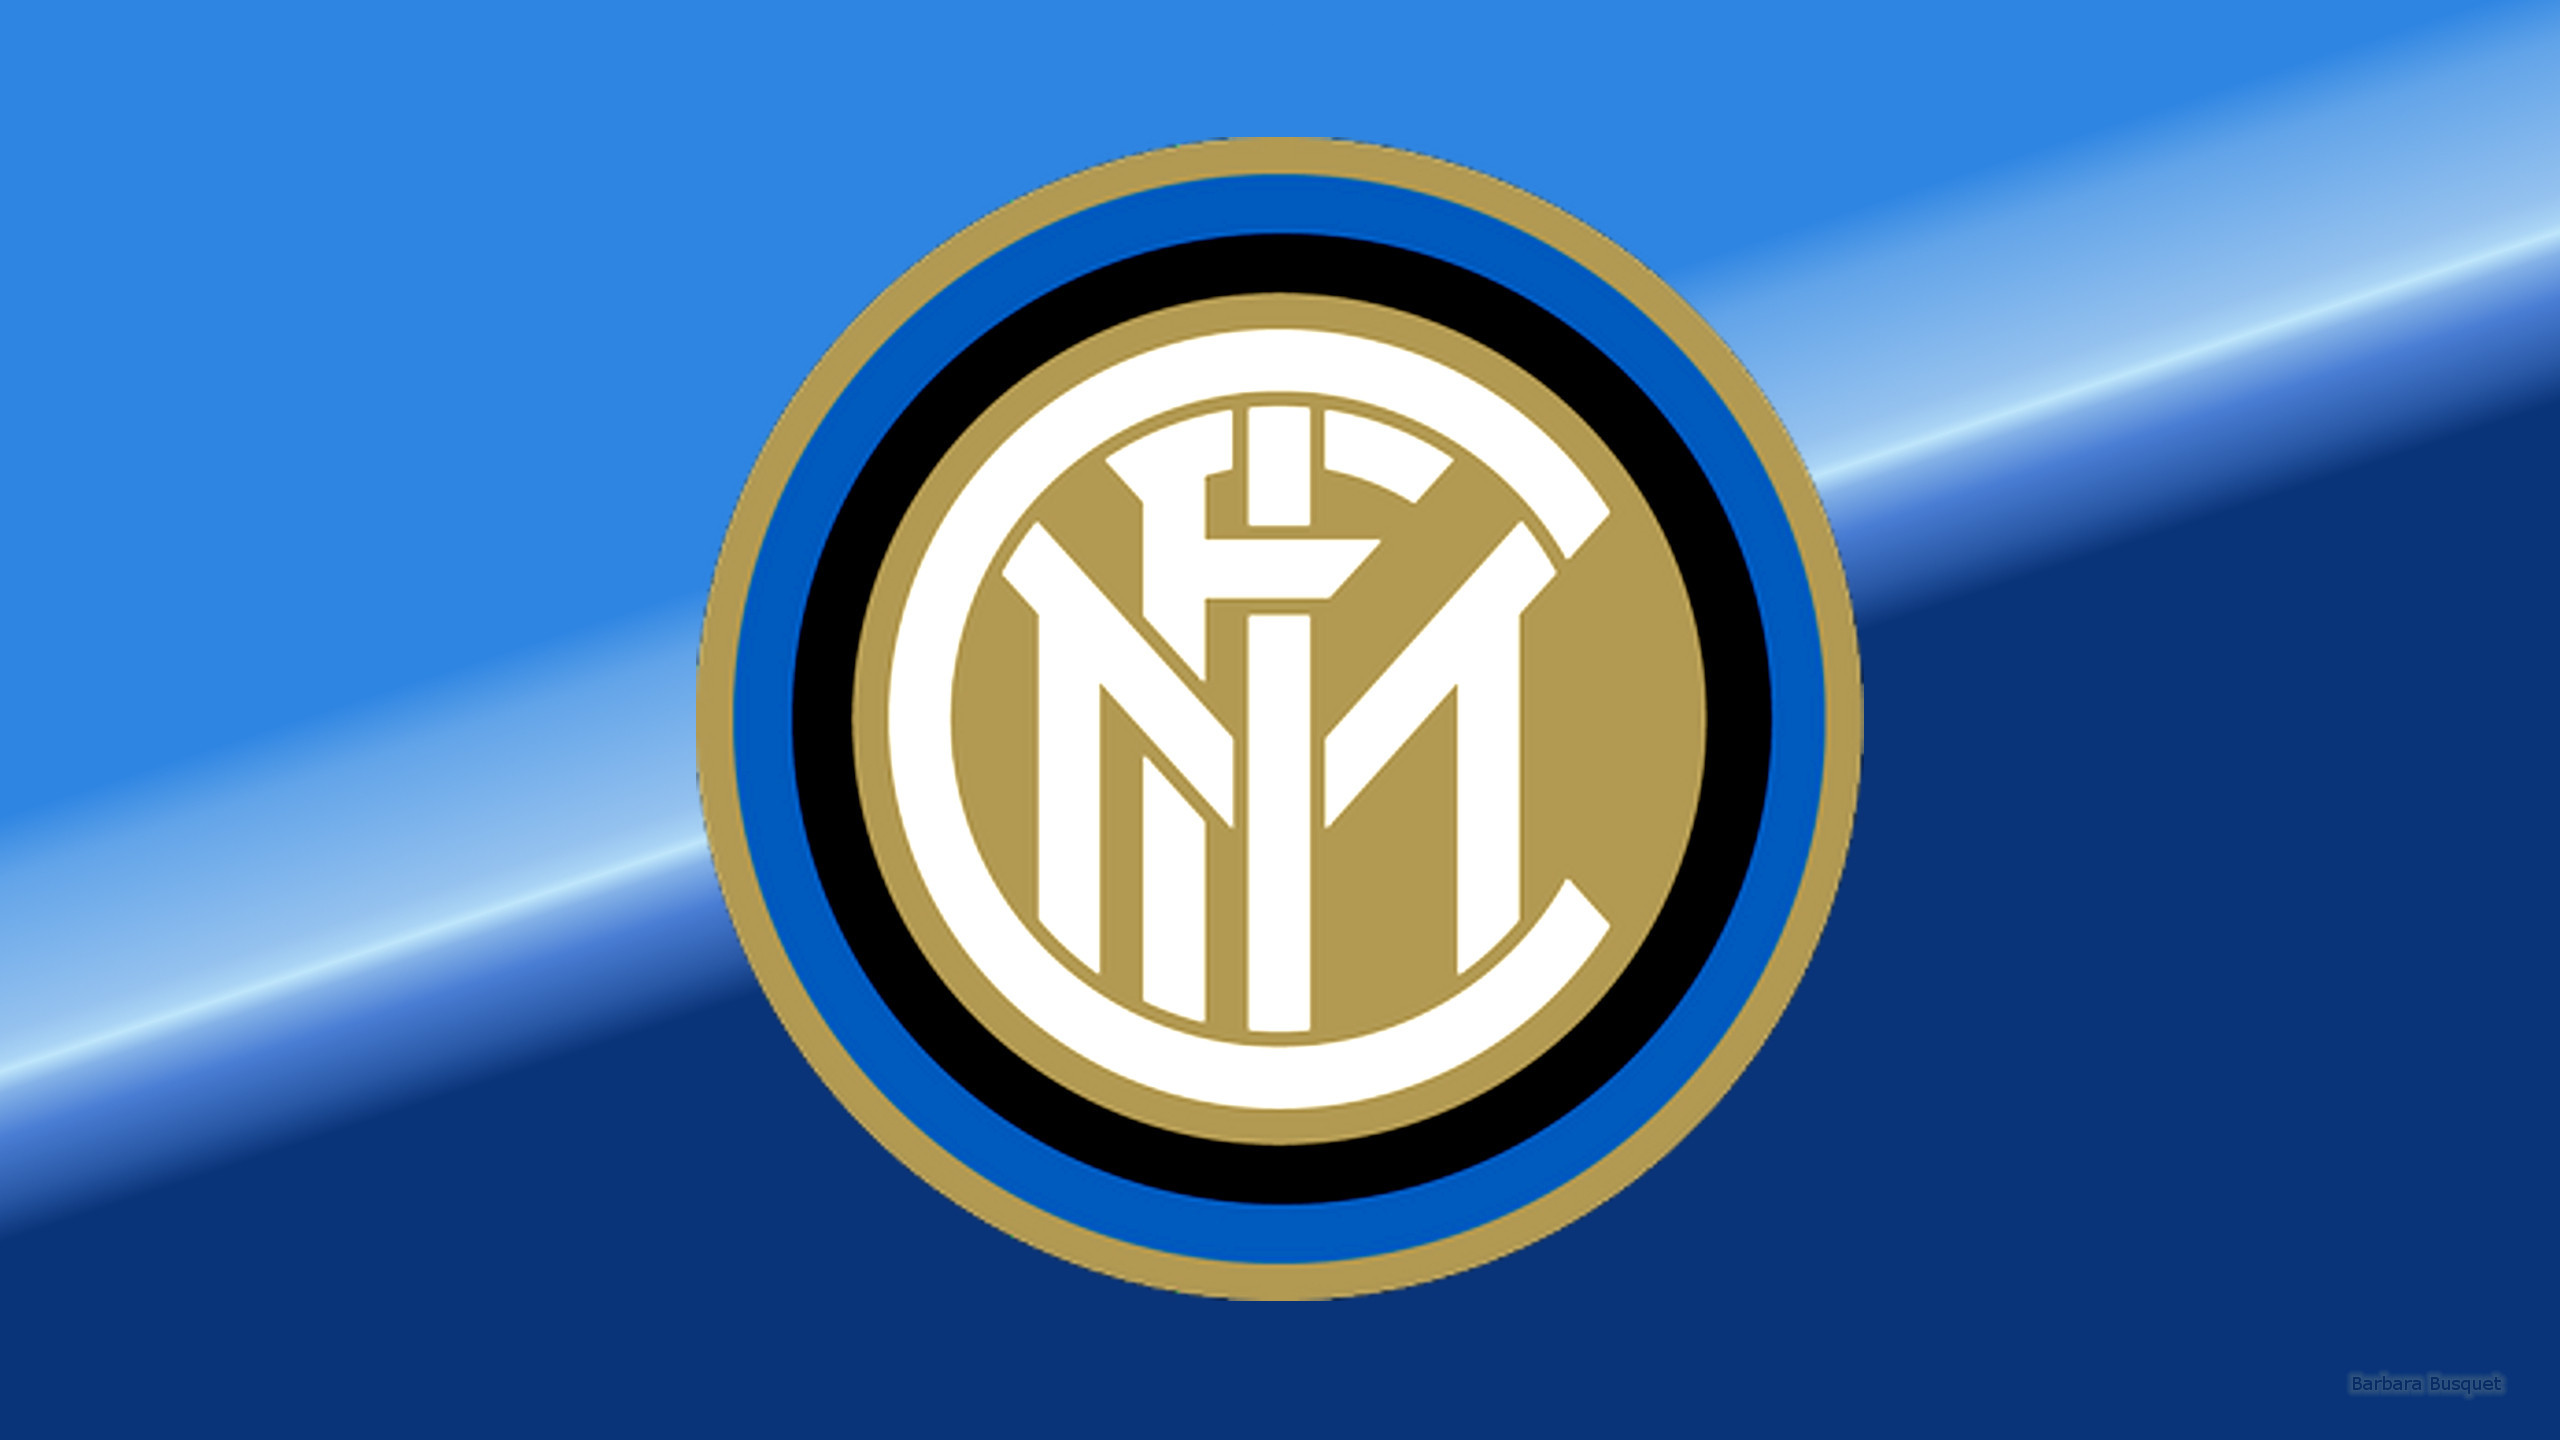 Inter wallpaper hd 71 immagini for Sfondi inter hd